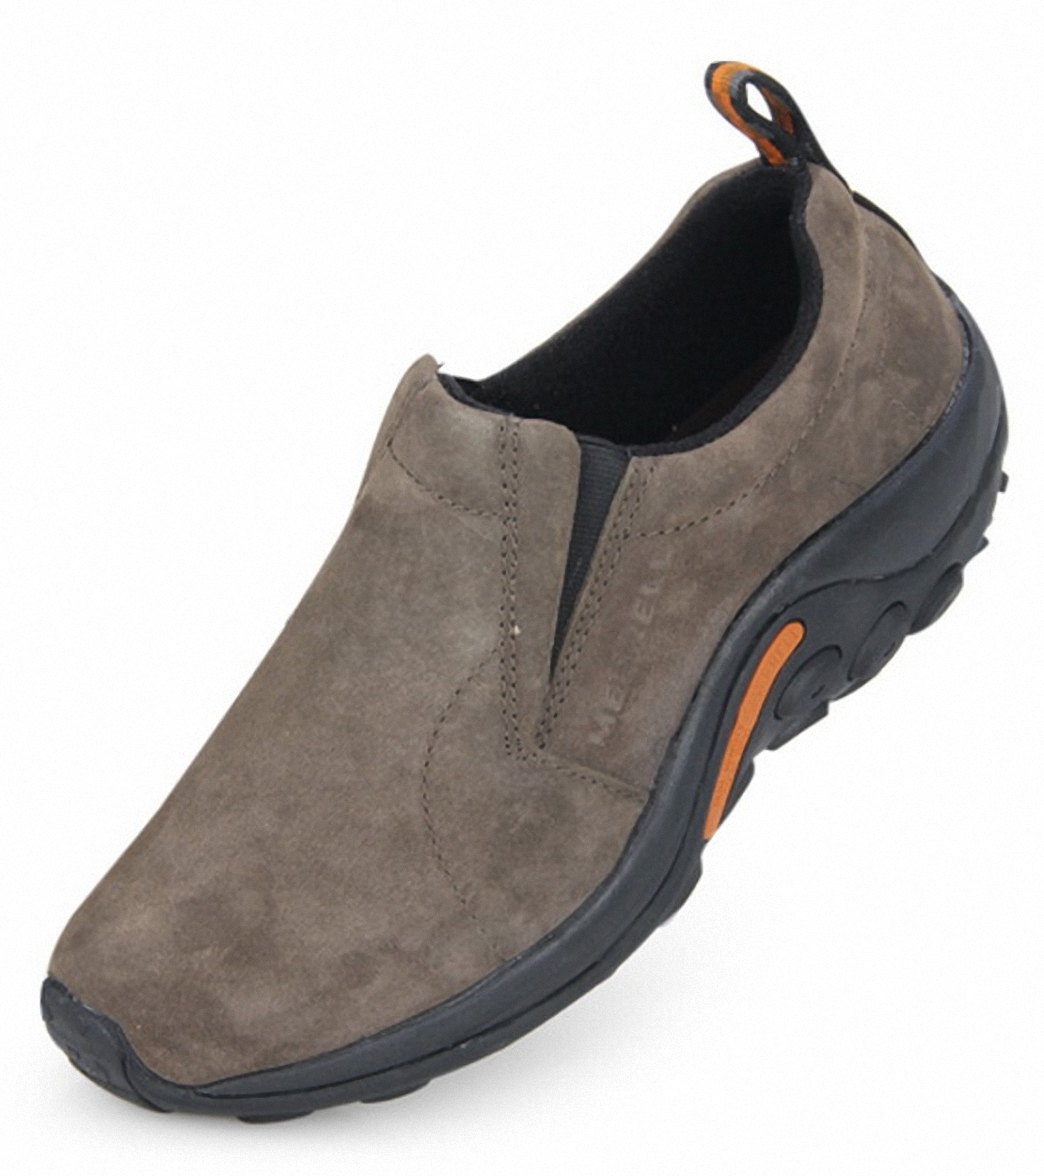 83321b0cdc59a Merrell Men's Jungle Moc Slip On at SwimOutlet.com - Free Shipping